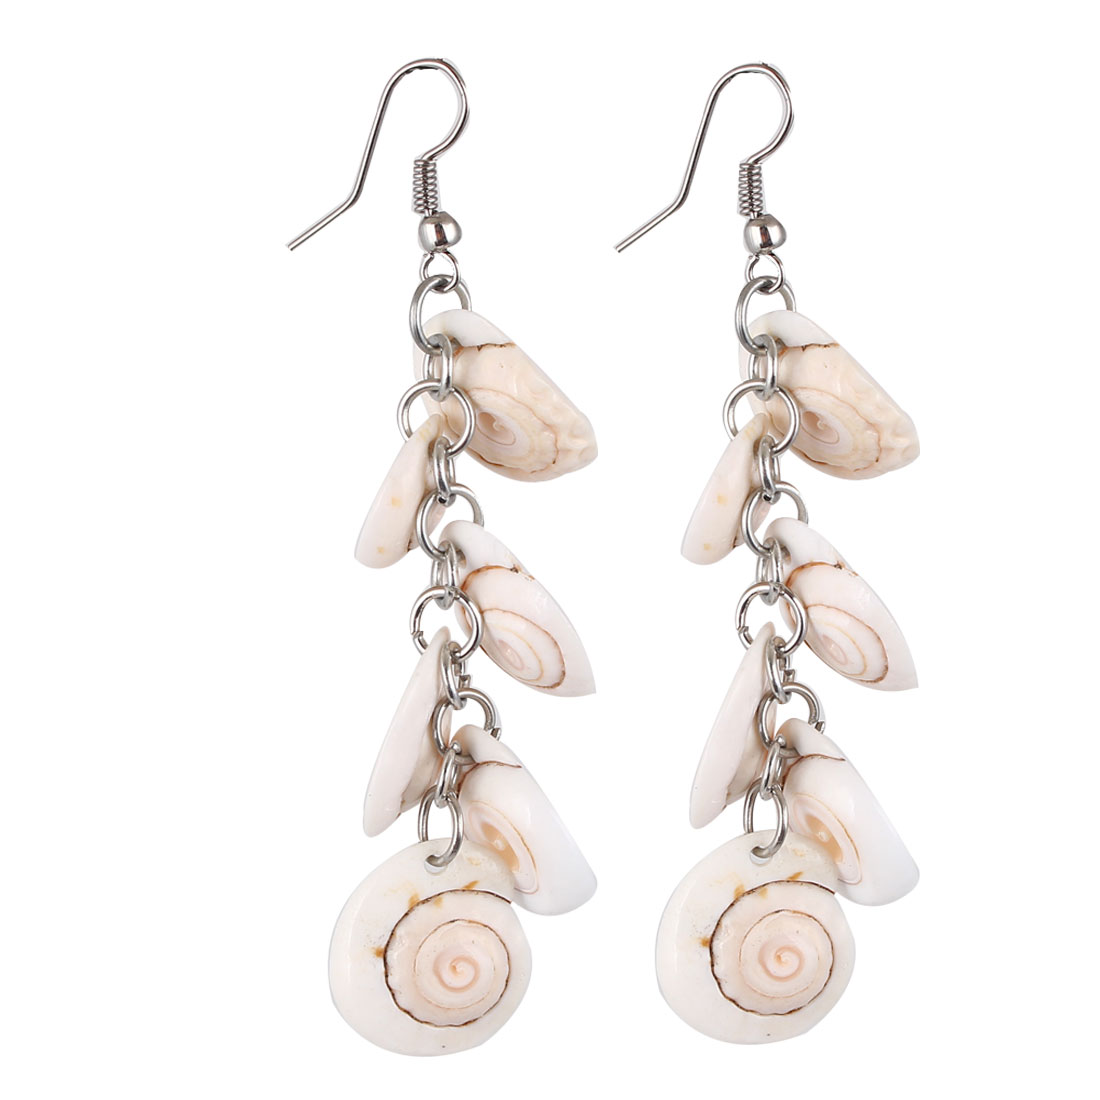 Woman Party Beige Sea Shell Pendant Dangling Fish Hook Ear Drops Earrings Eardrops Pair